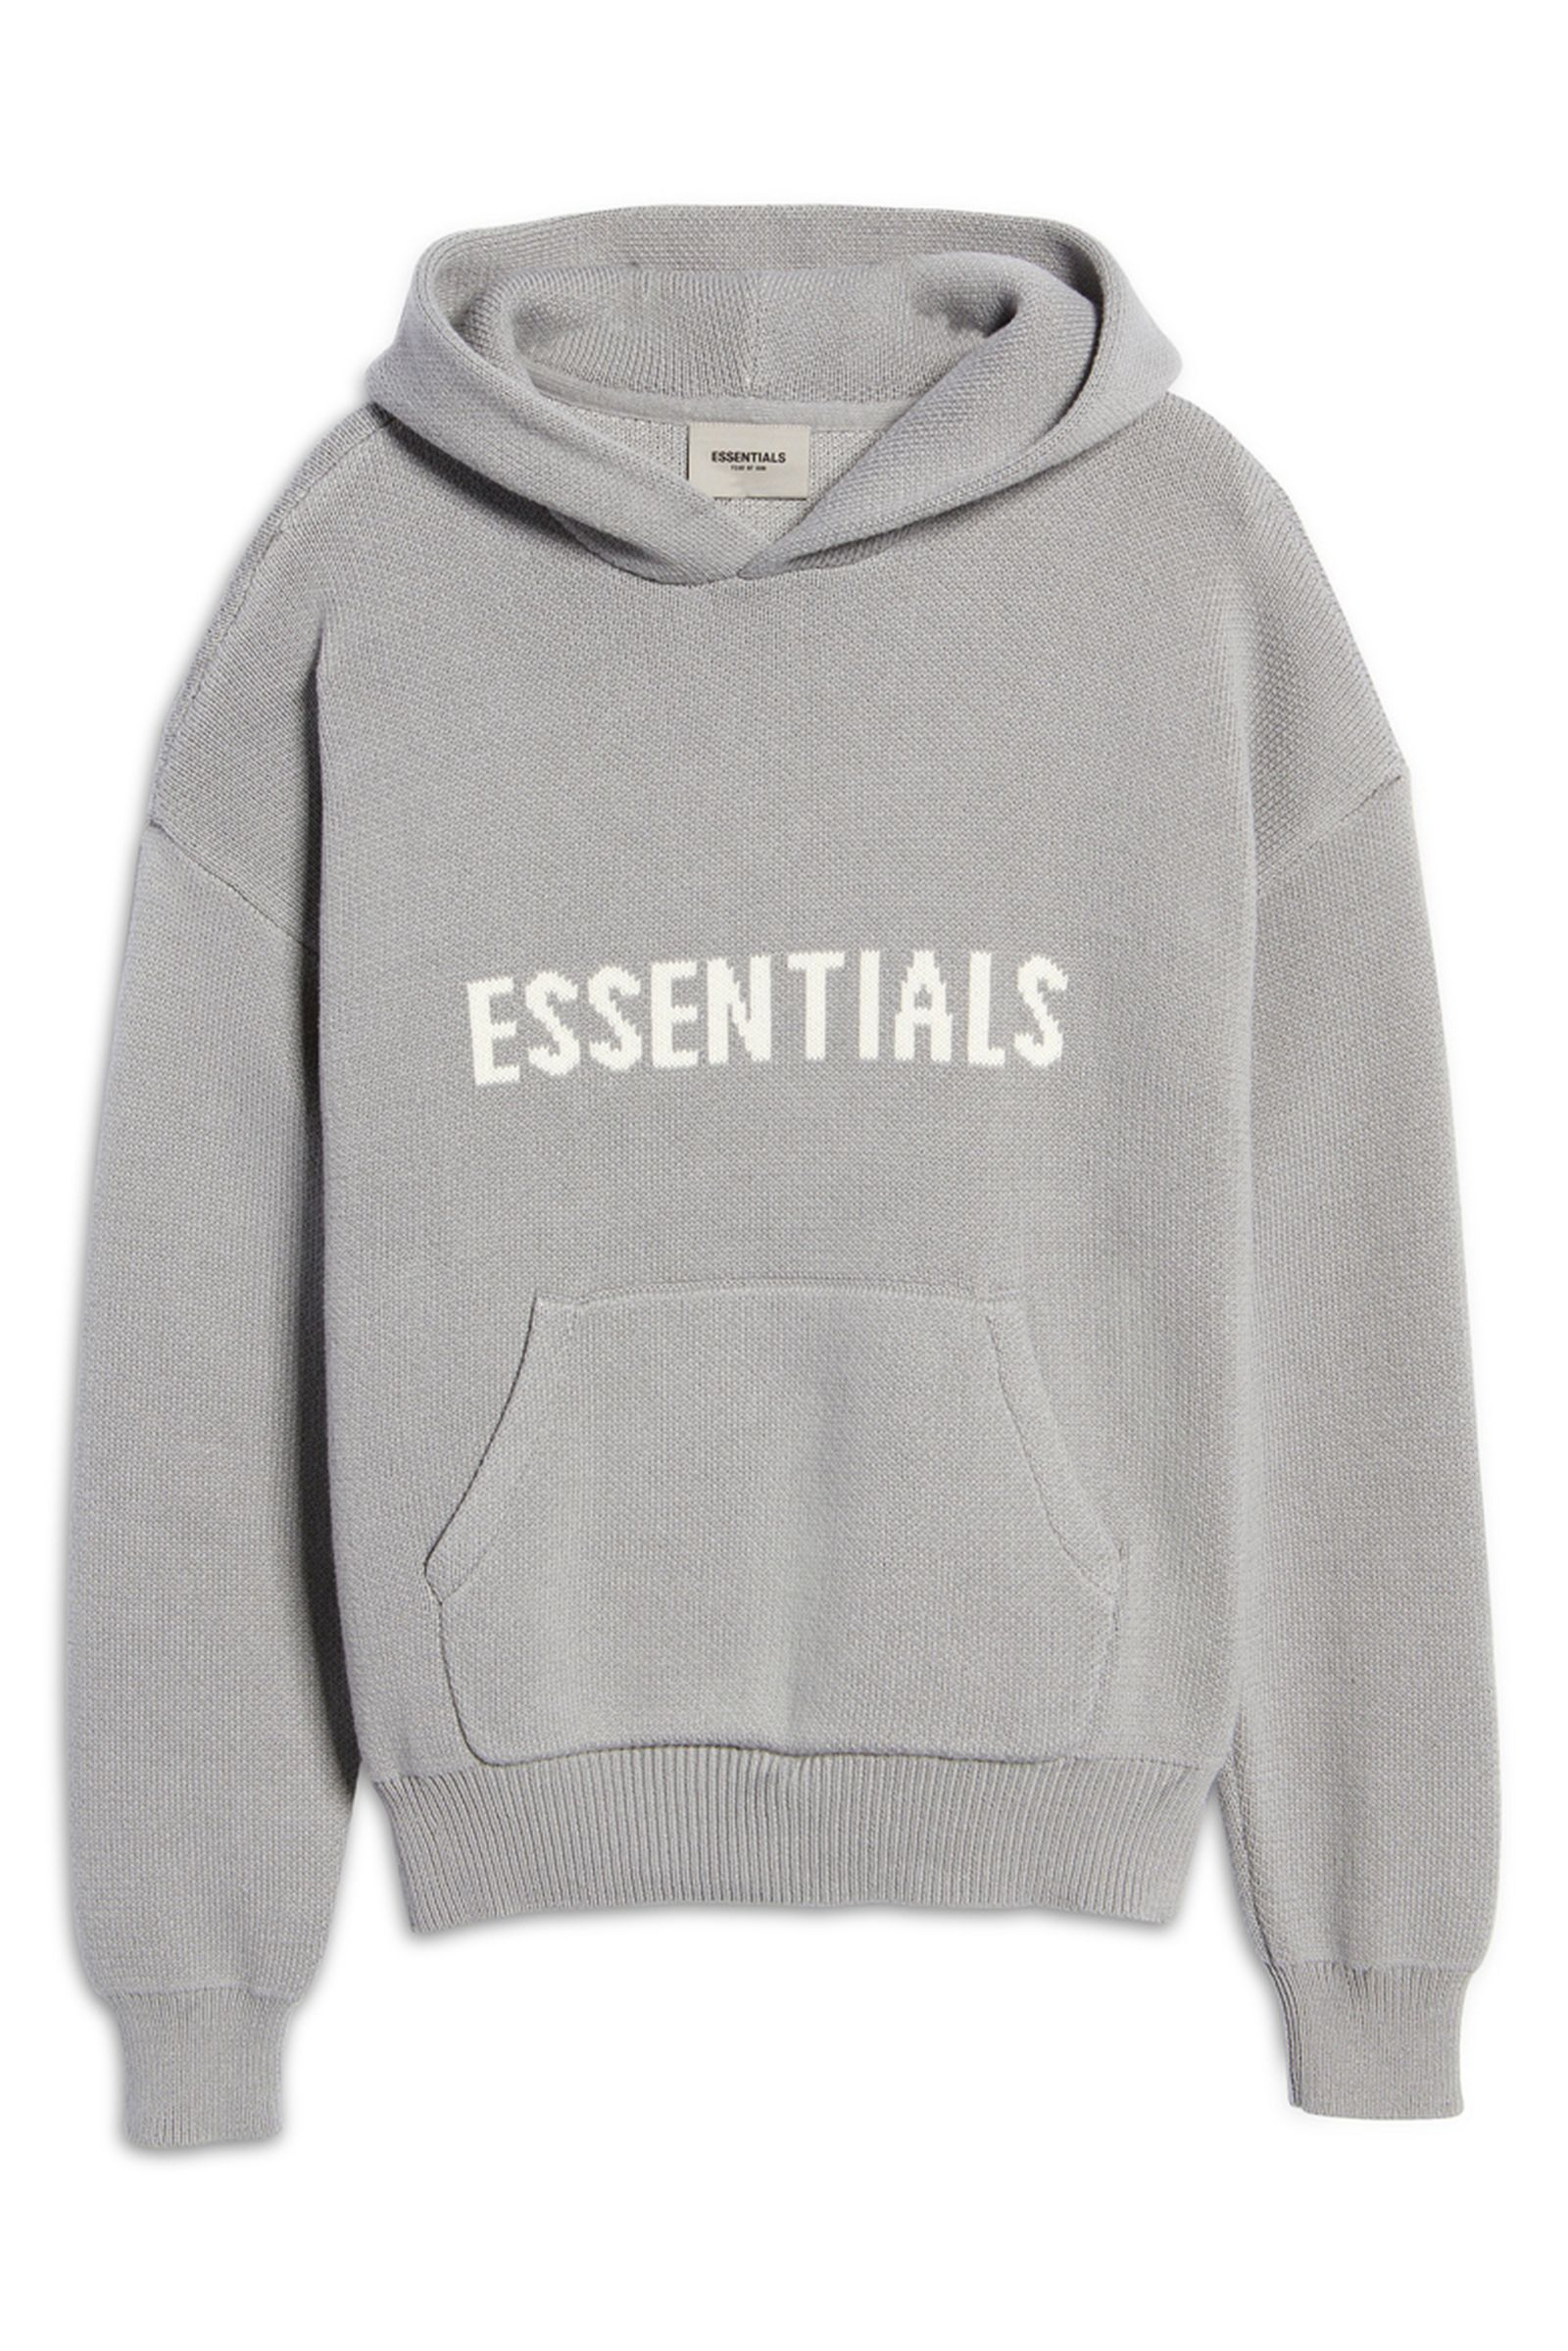 fear of god essentials nordstrom exclusive (4)